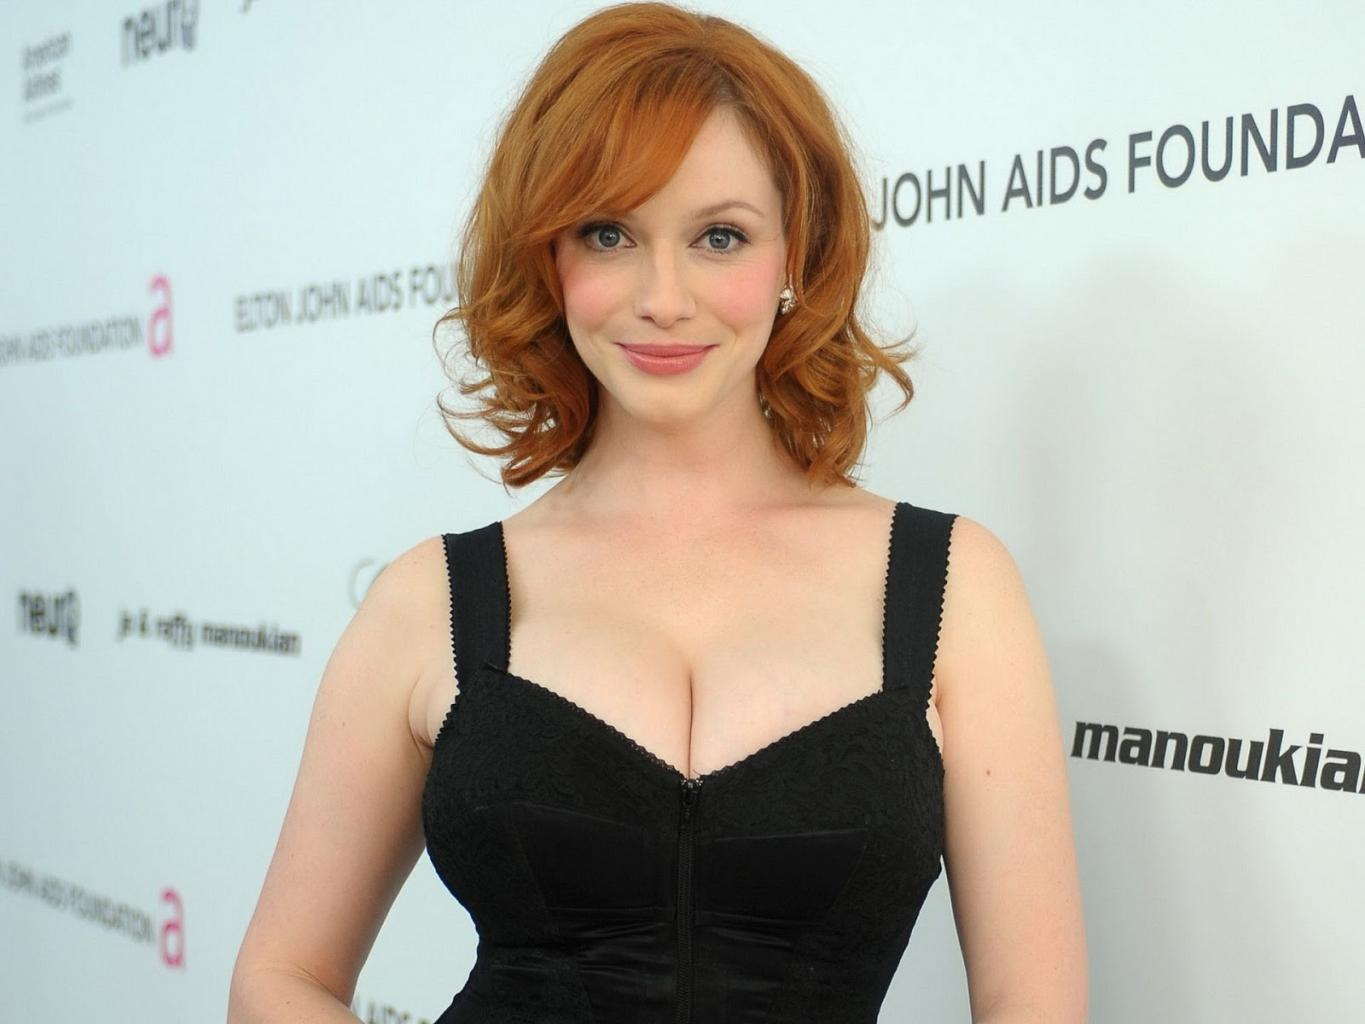 Christina Hendricks, Beautiful With Such Impressive Curves